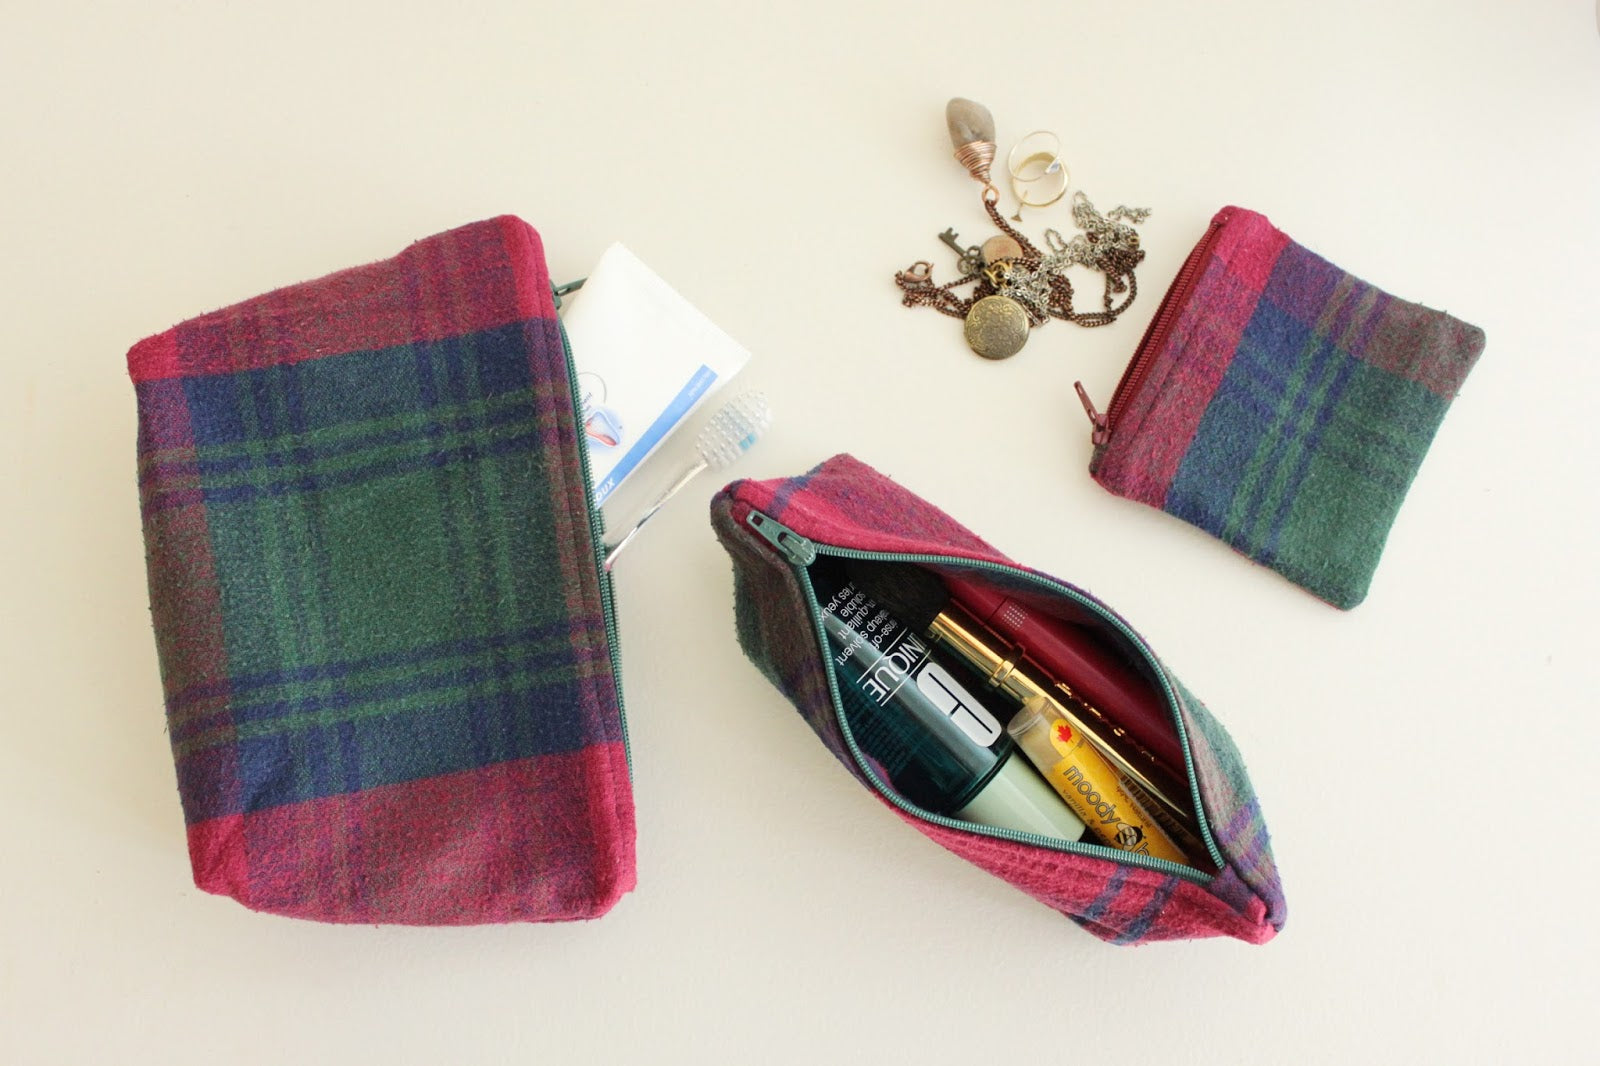 Sewing zippered pouches www.janerichmond.com